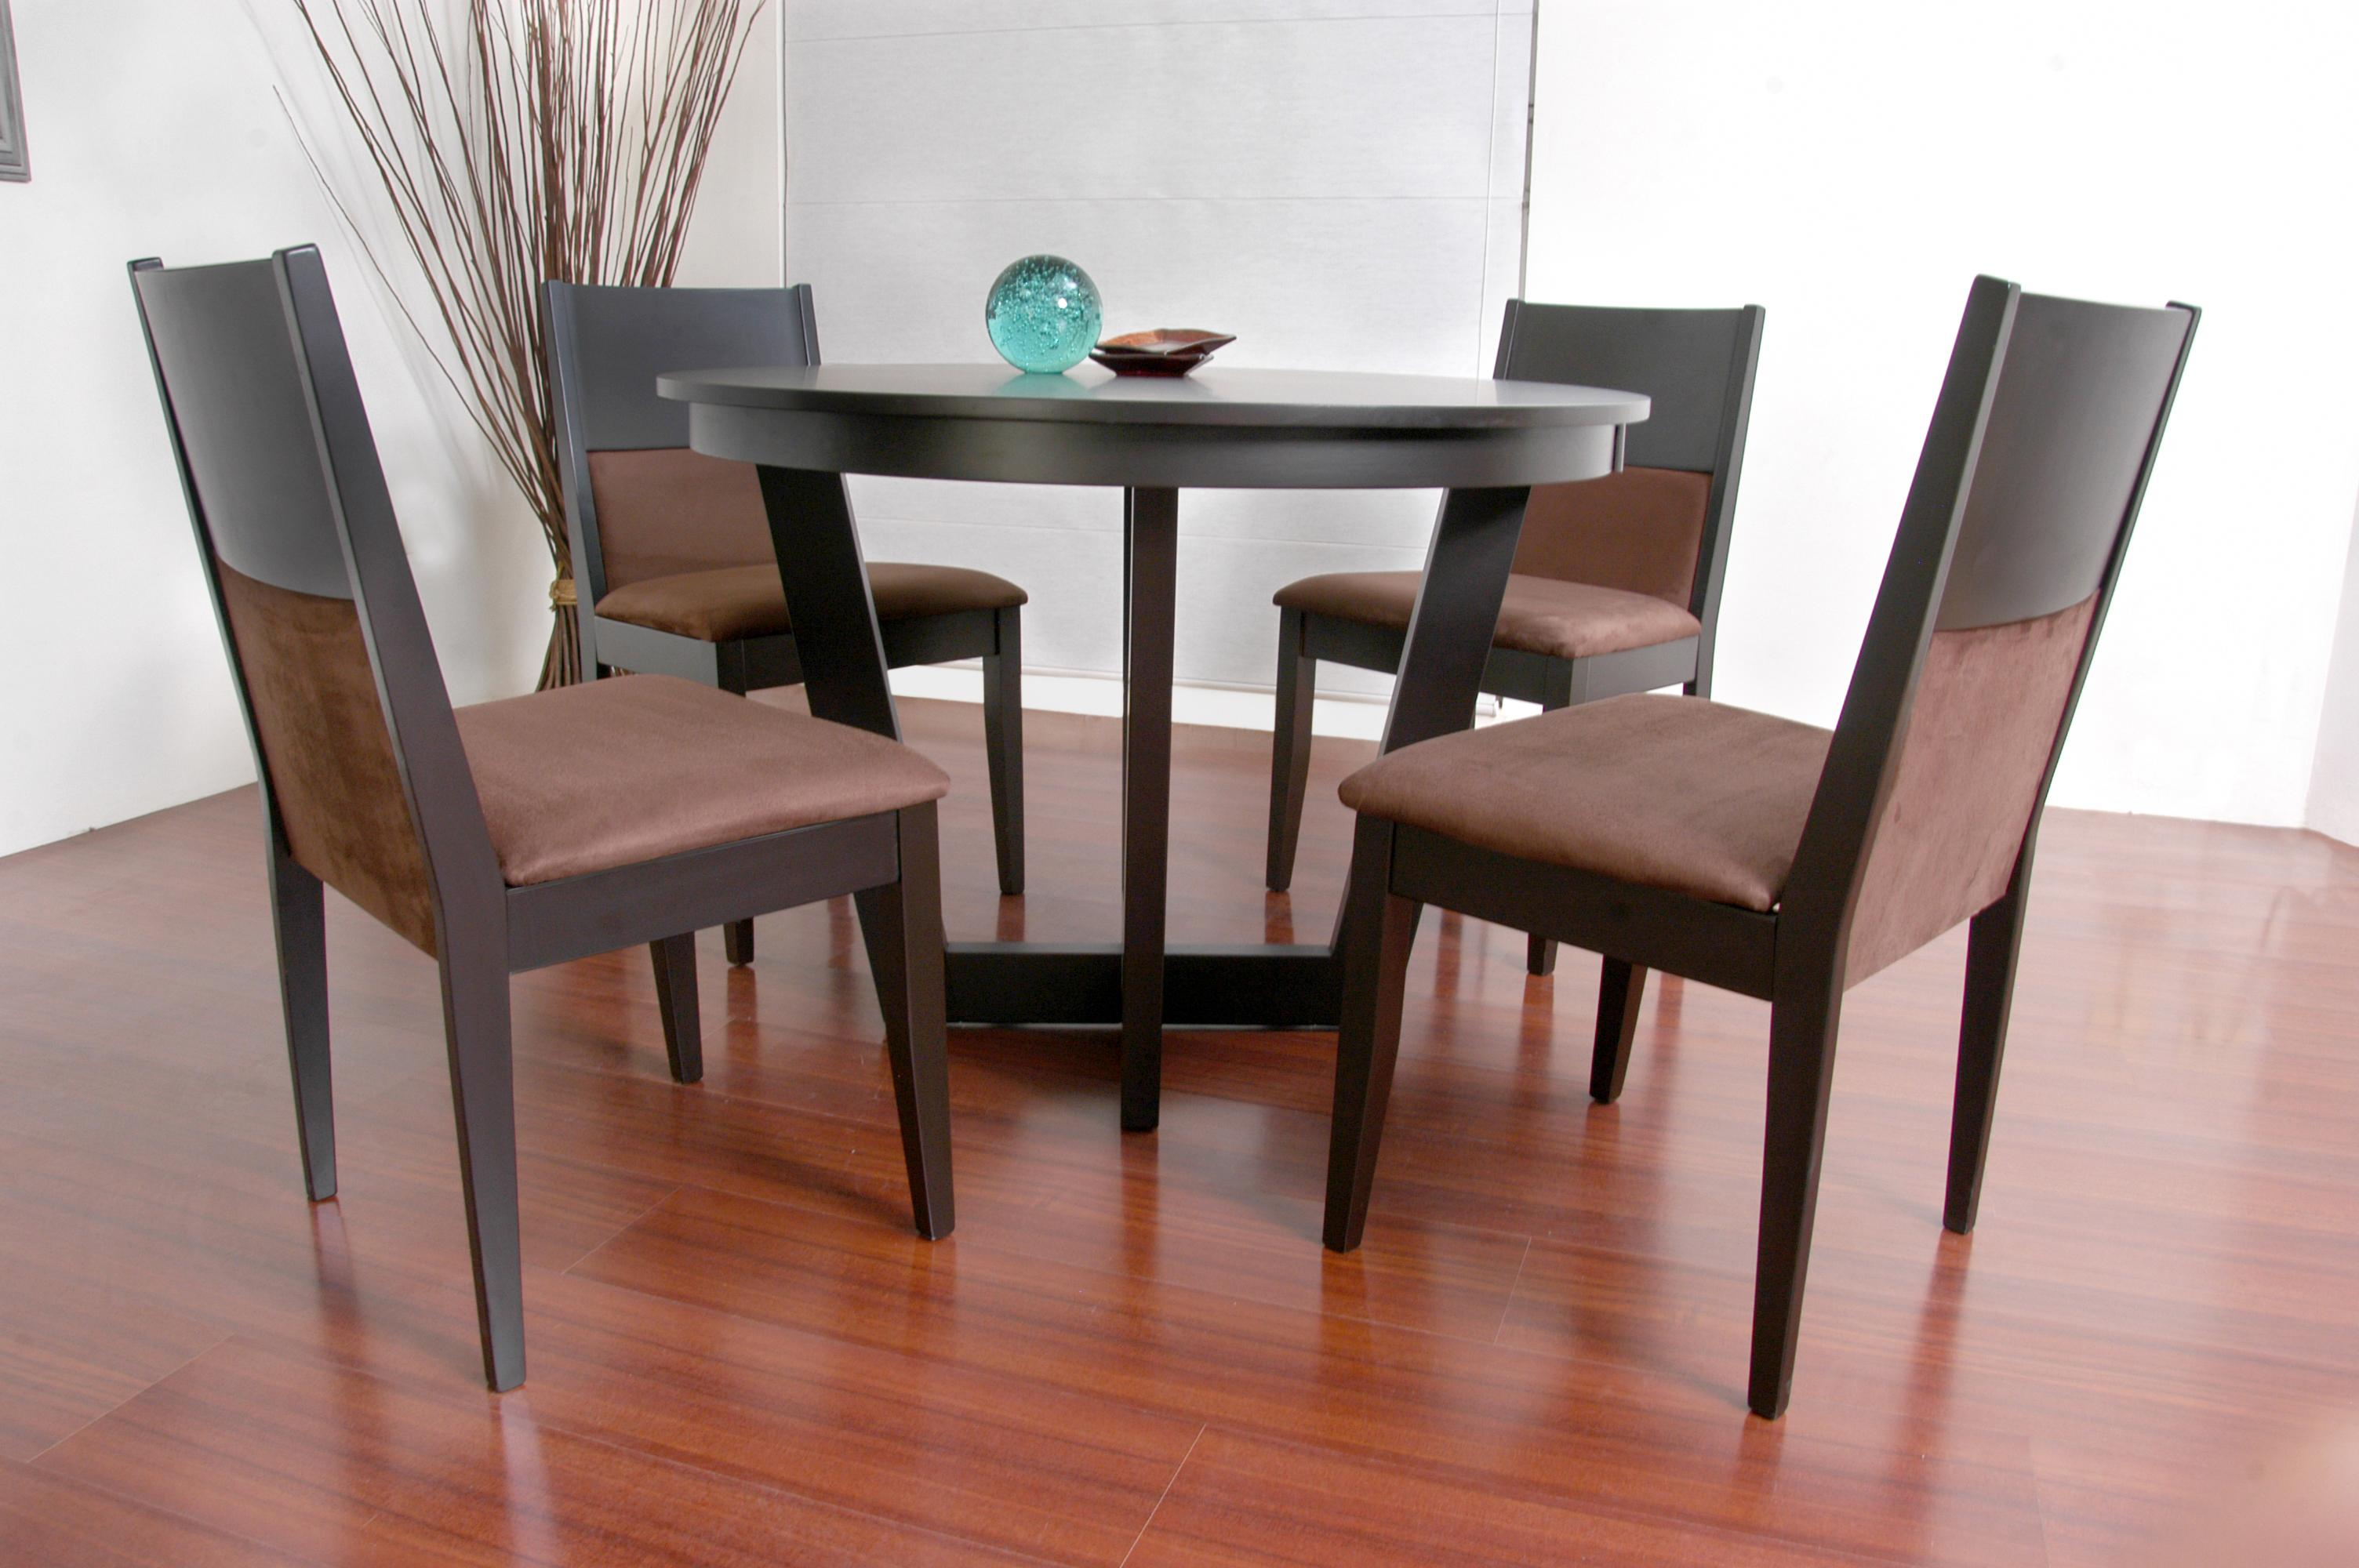 Antecomedor siena for Comedor 4 sillas coppel